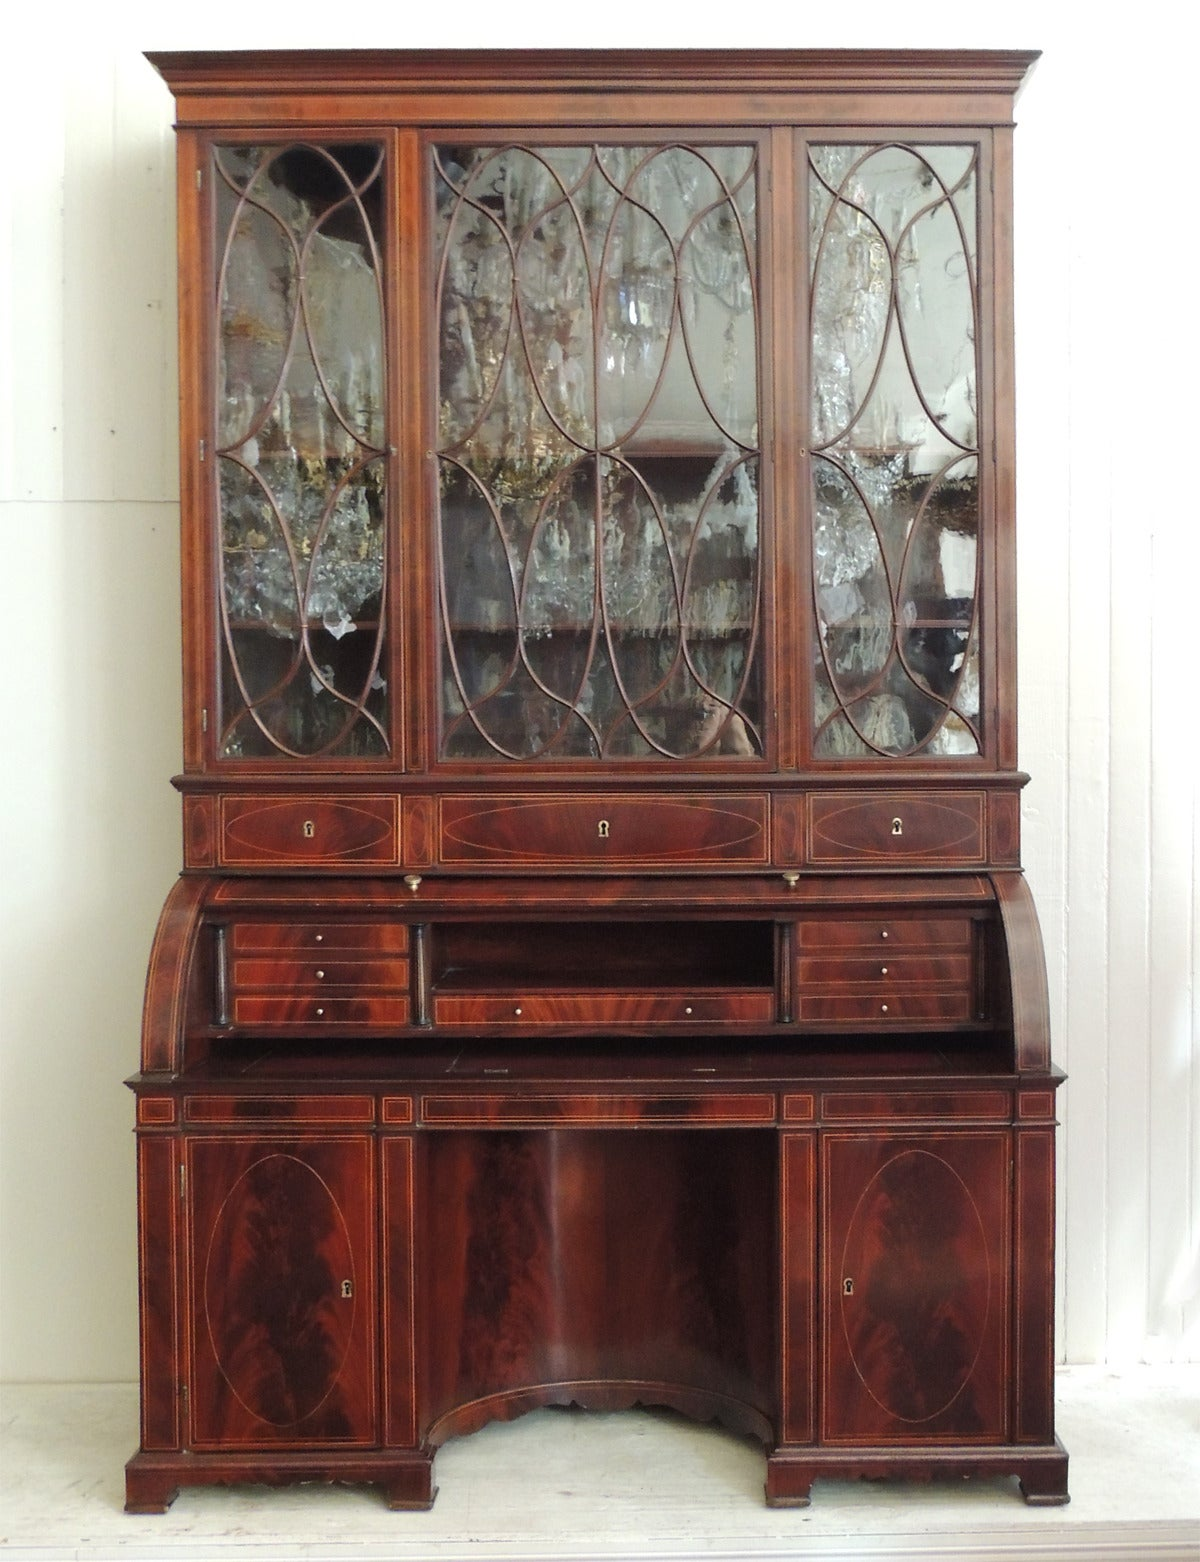 Cylinder Roll Top Secretary For This Stunning 19th Century English Regency Gany Circa 1800 Features An Upper Cabinet